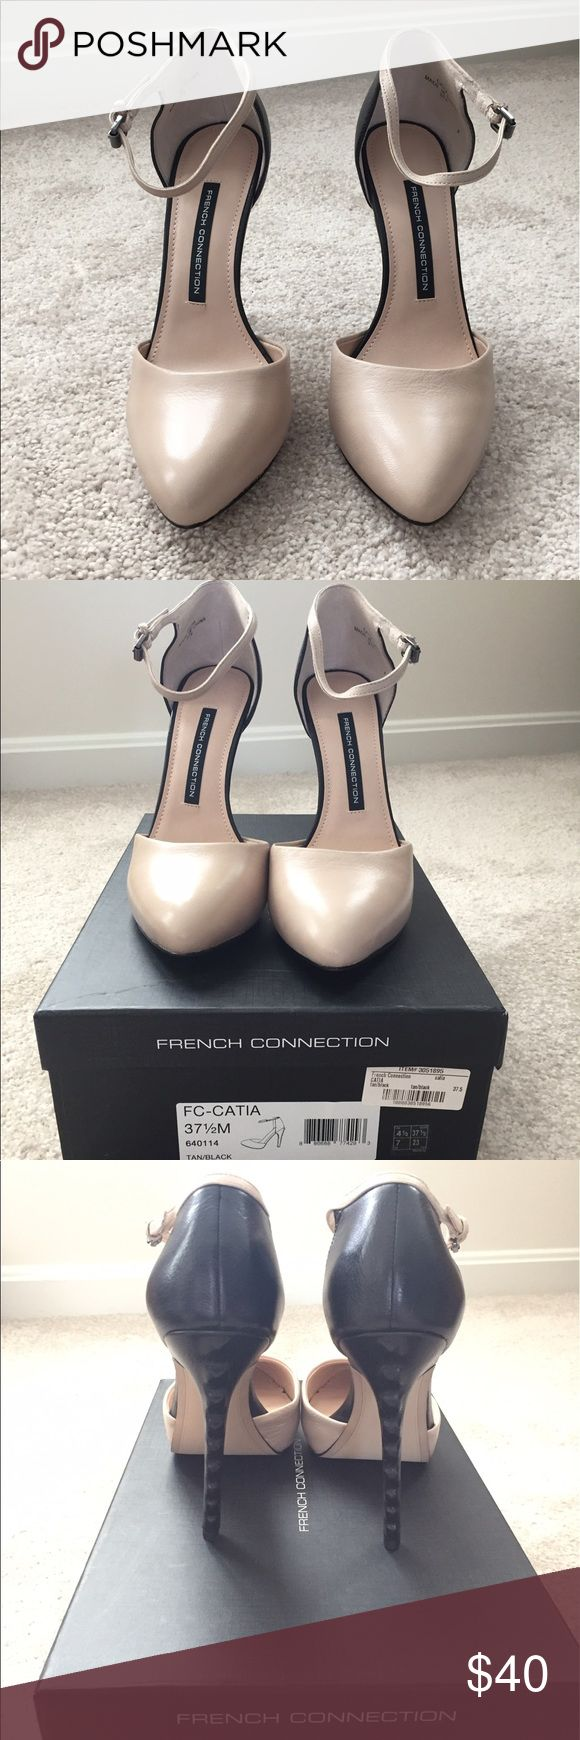 French Connection Ankle Strap Pumps Stylish two tone French Connection shoes. Brand new in box! French Connection Shoes Heels